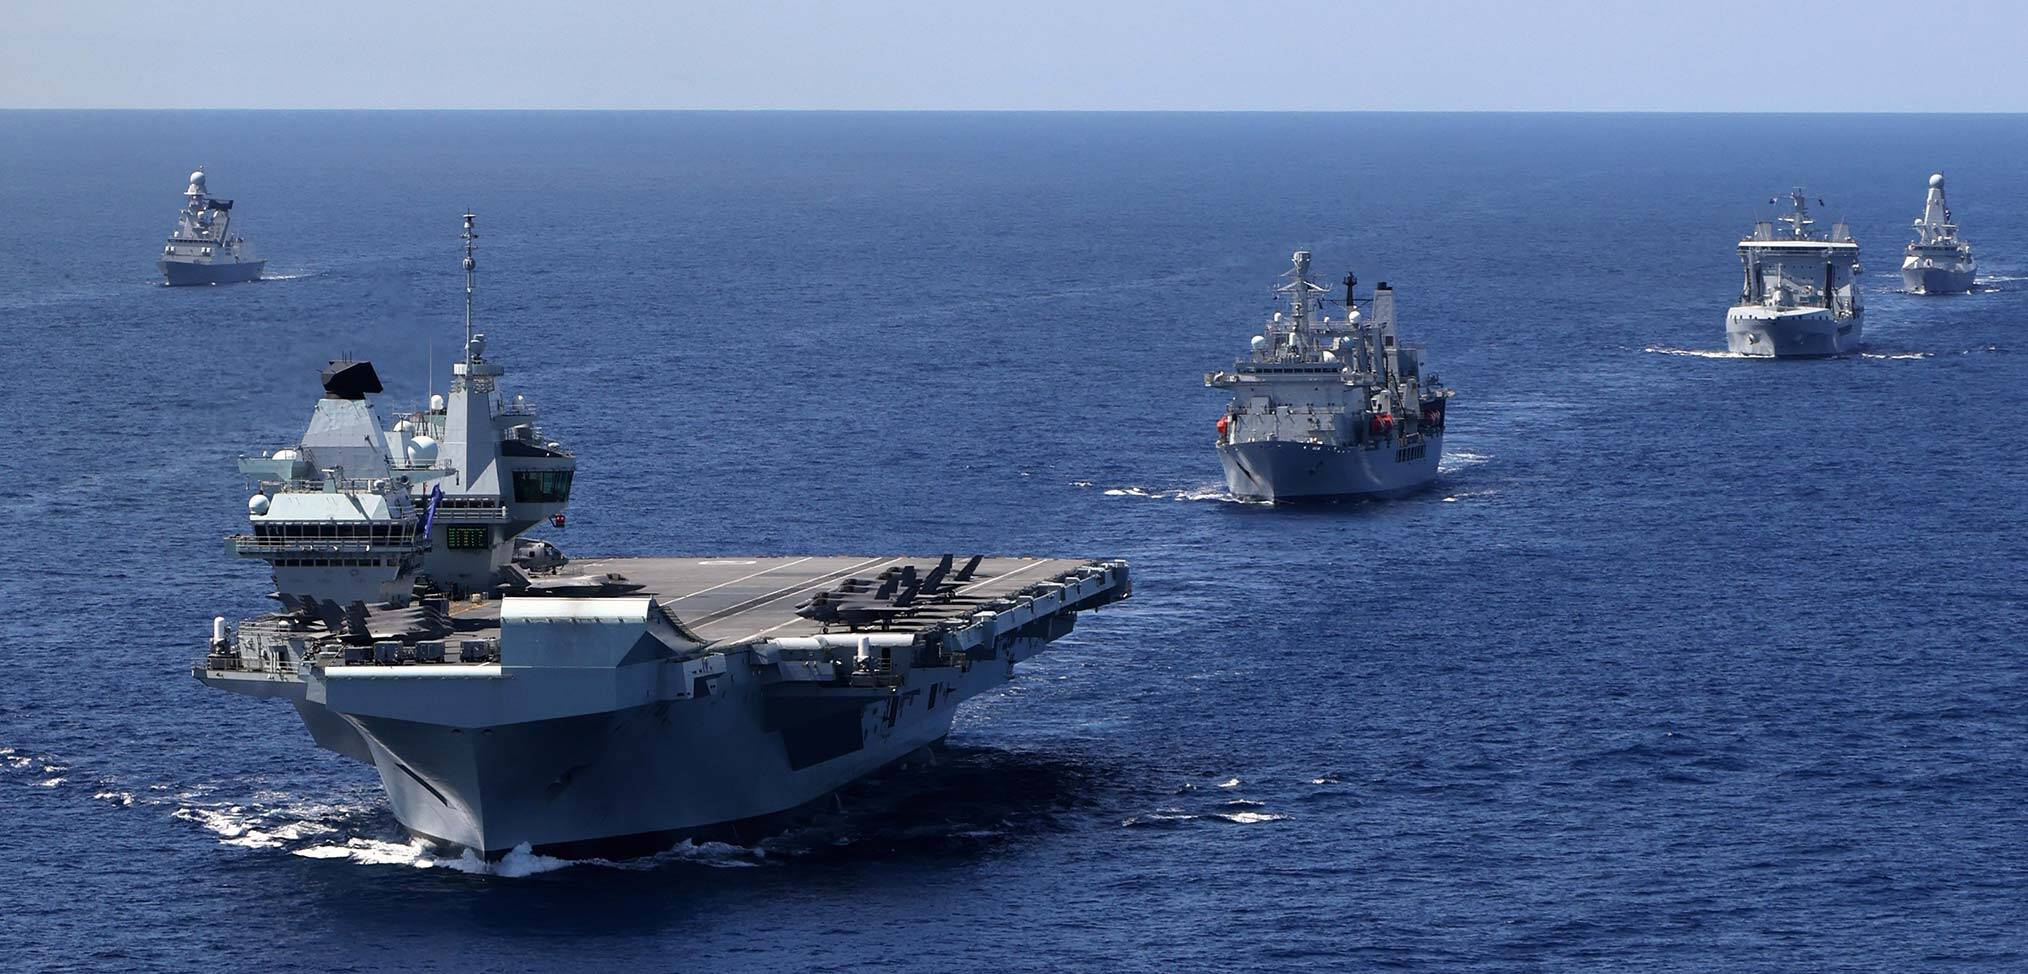 Photo essay – 10 hectic days for the Royal Navy's carrier strike group